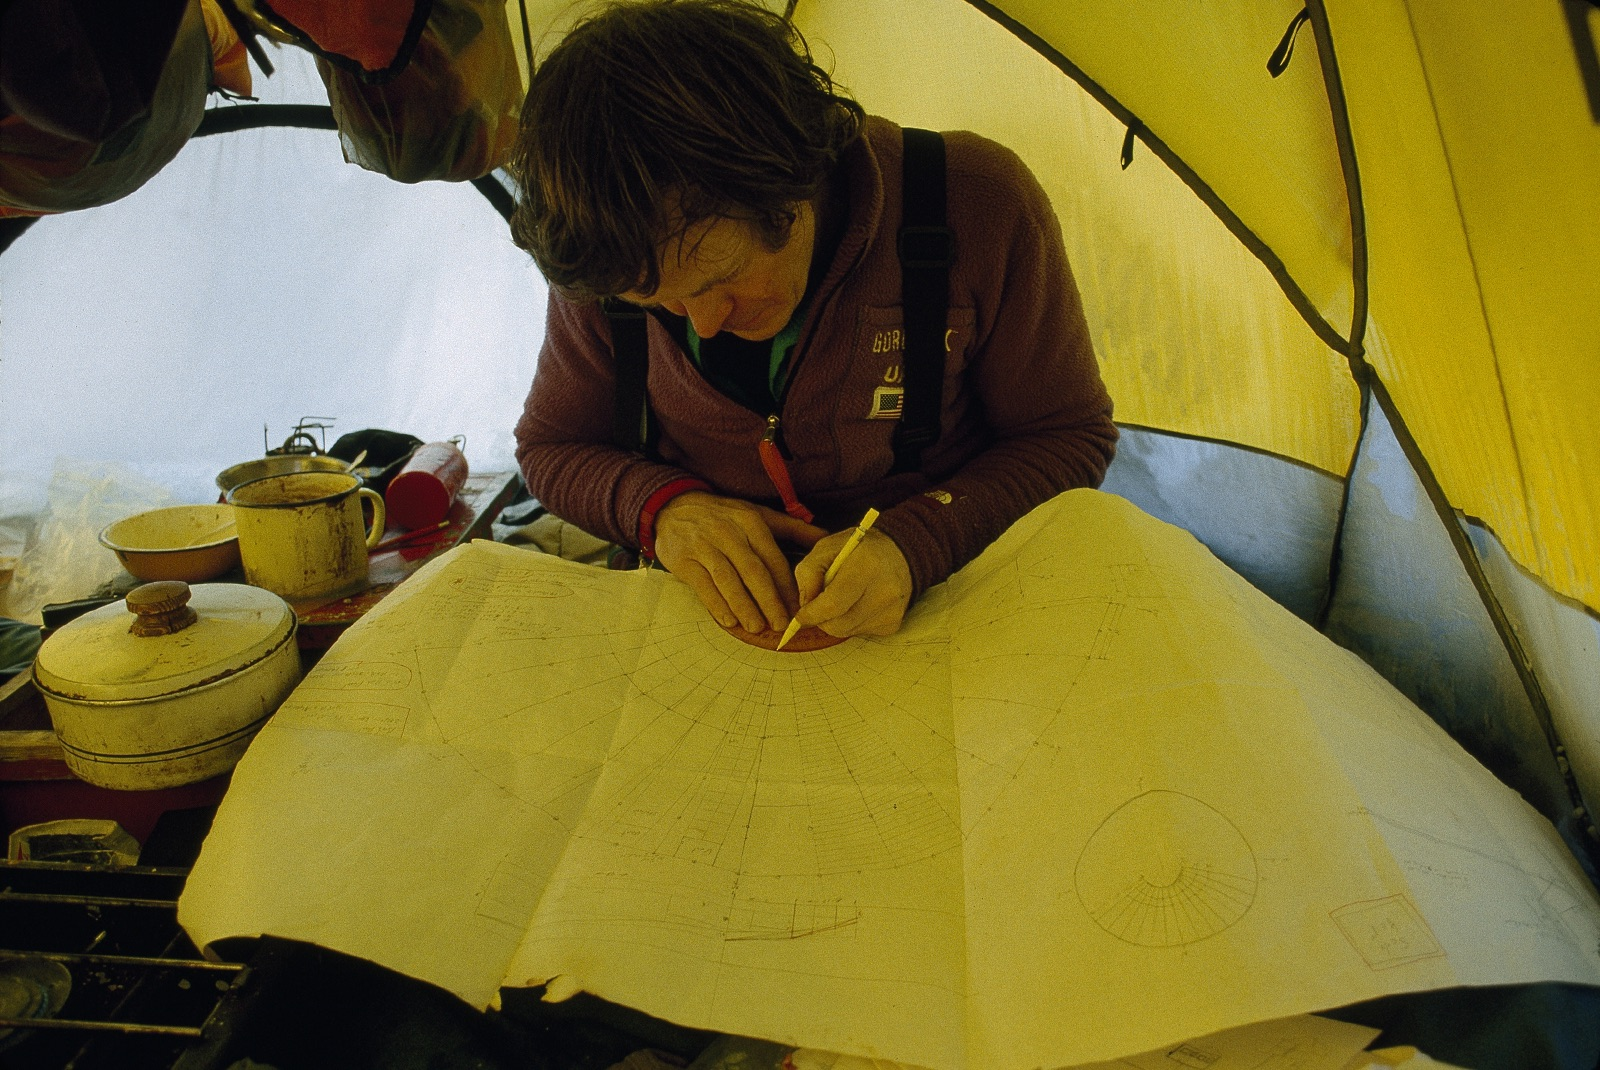 Will Steger plotting route in Trans-Antarctica tent. ©Trans-Antarctica Photo by Per Breiehagen